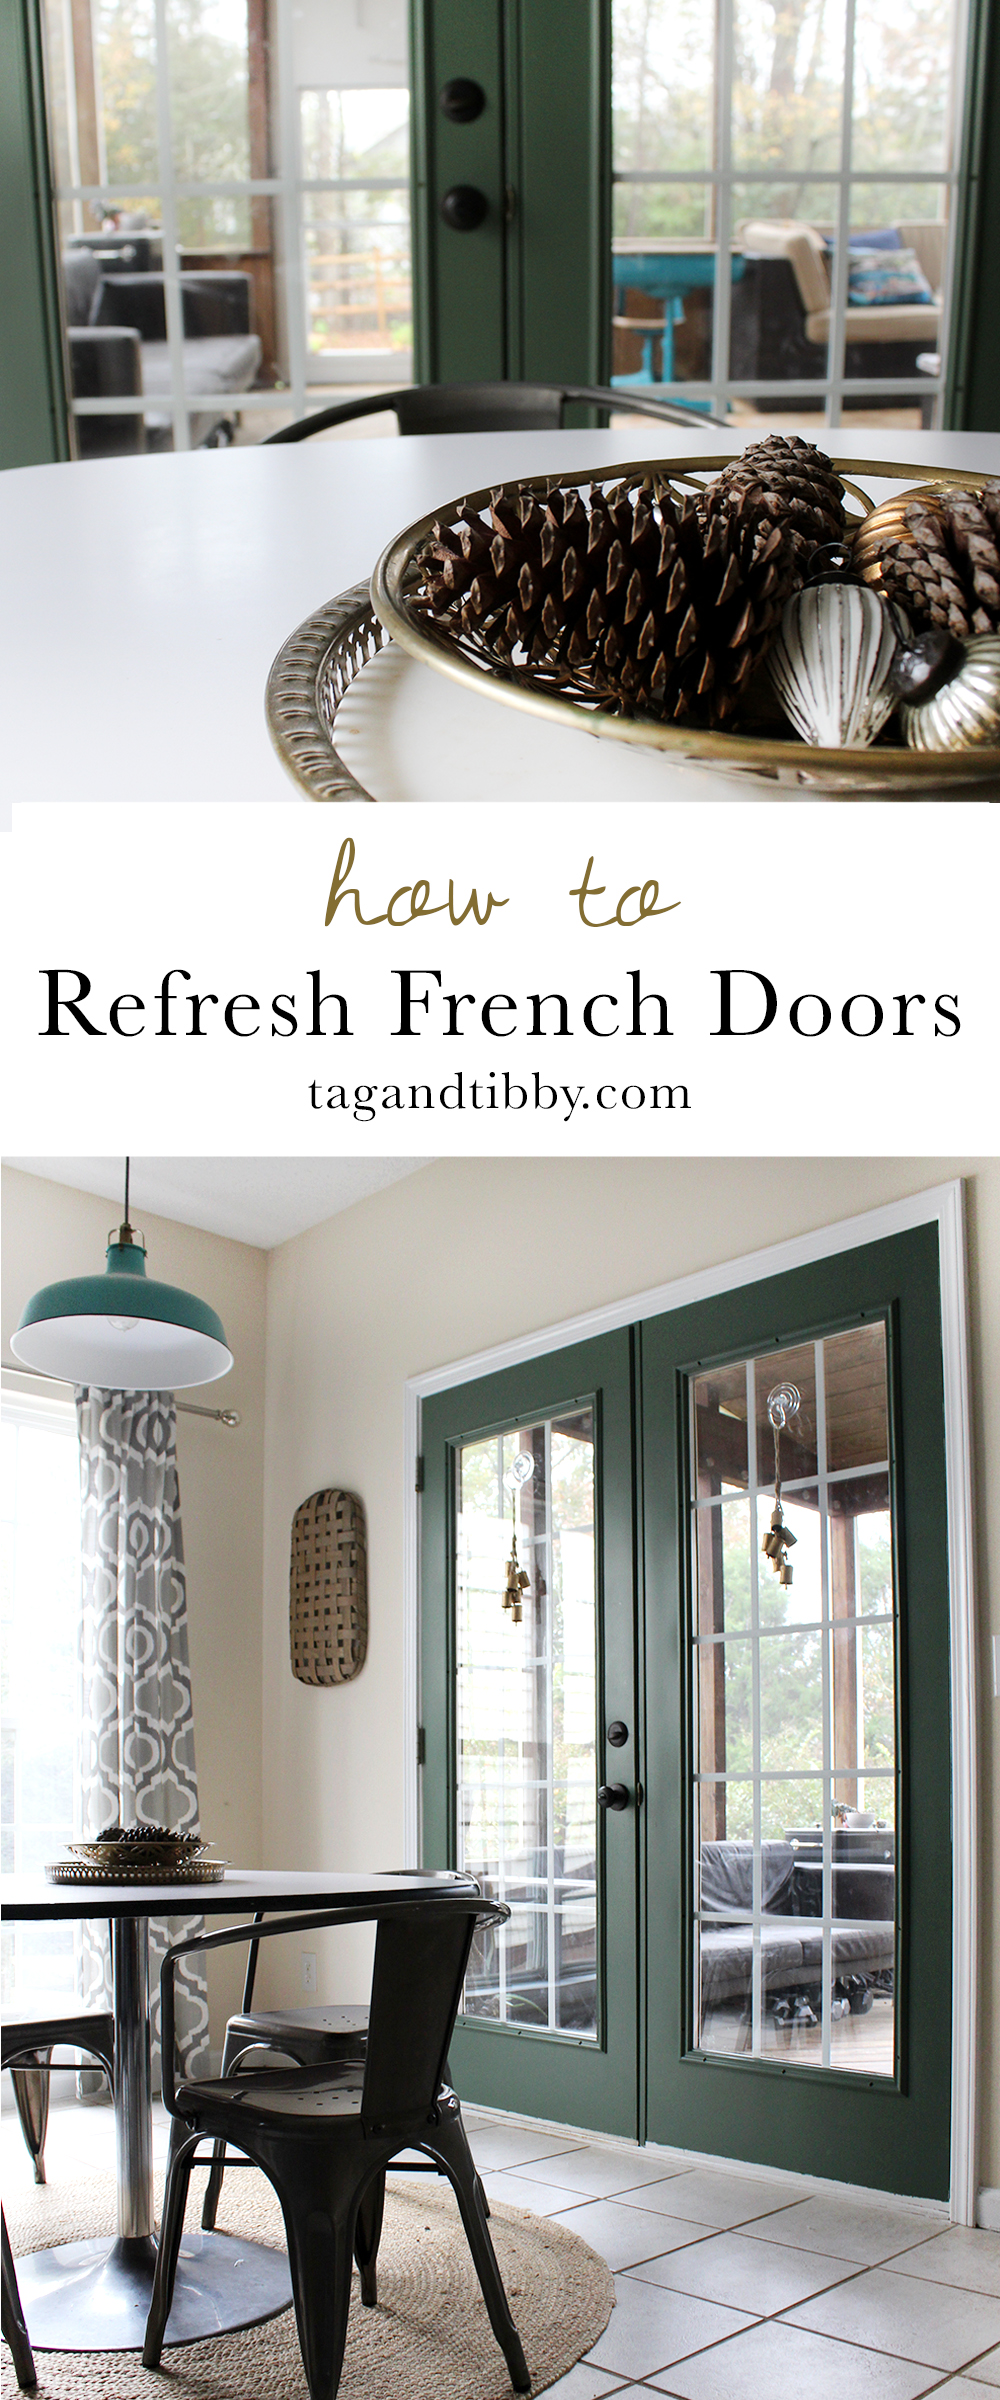 step by step guide for updating your french doors for under $80